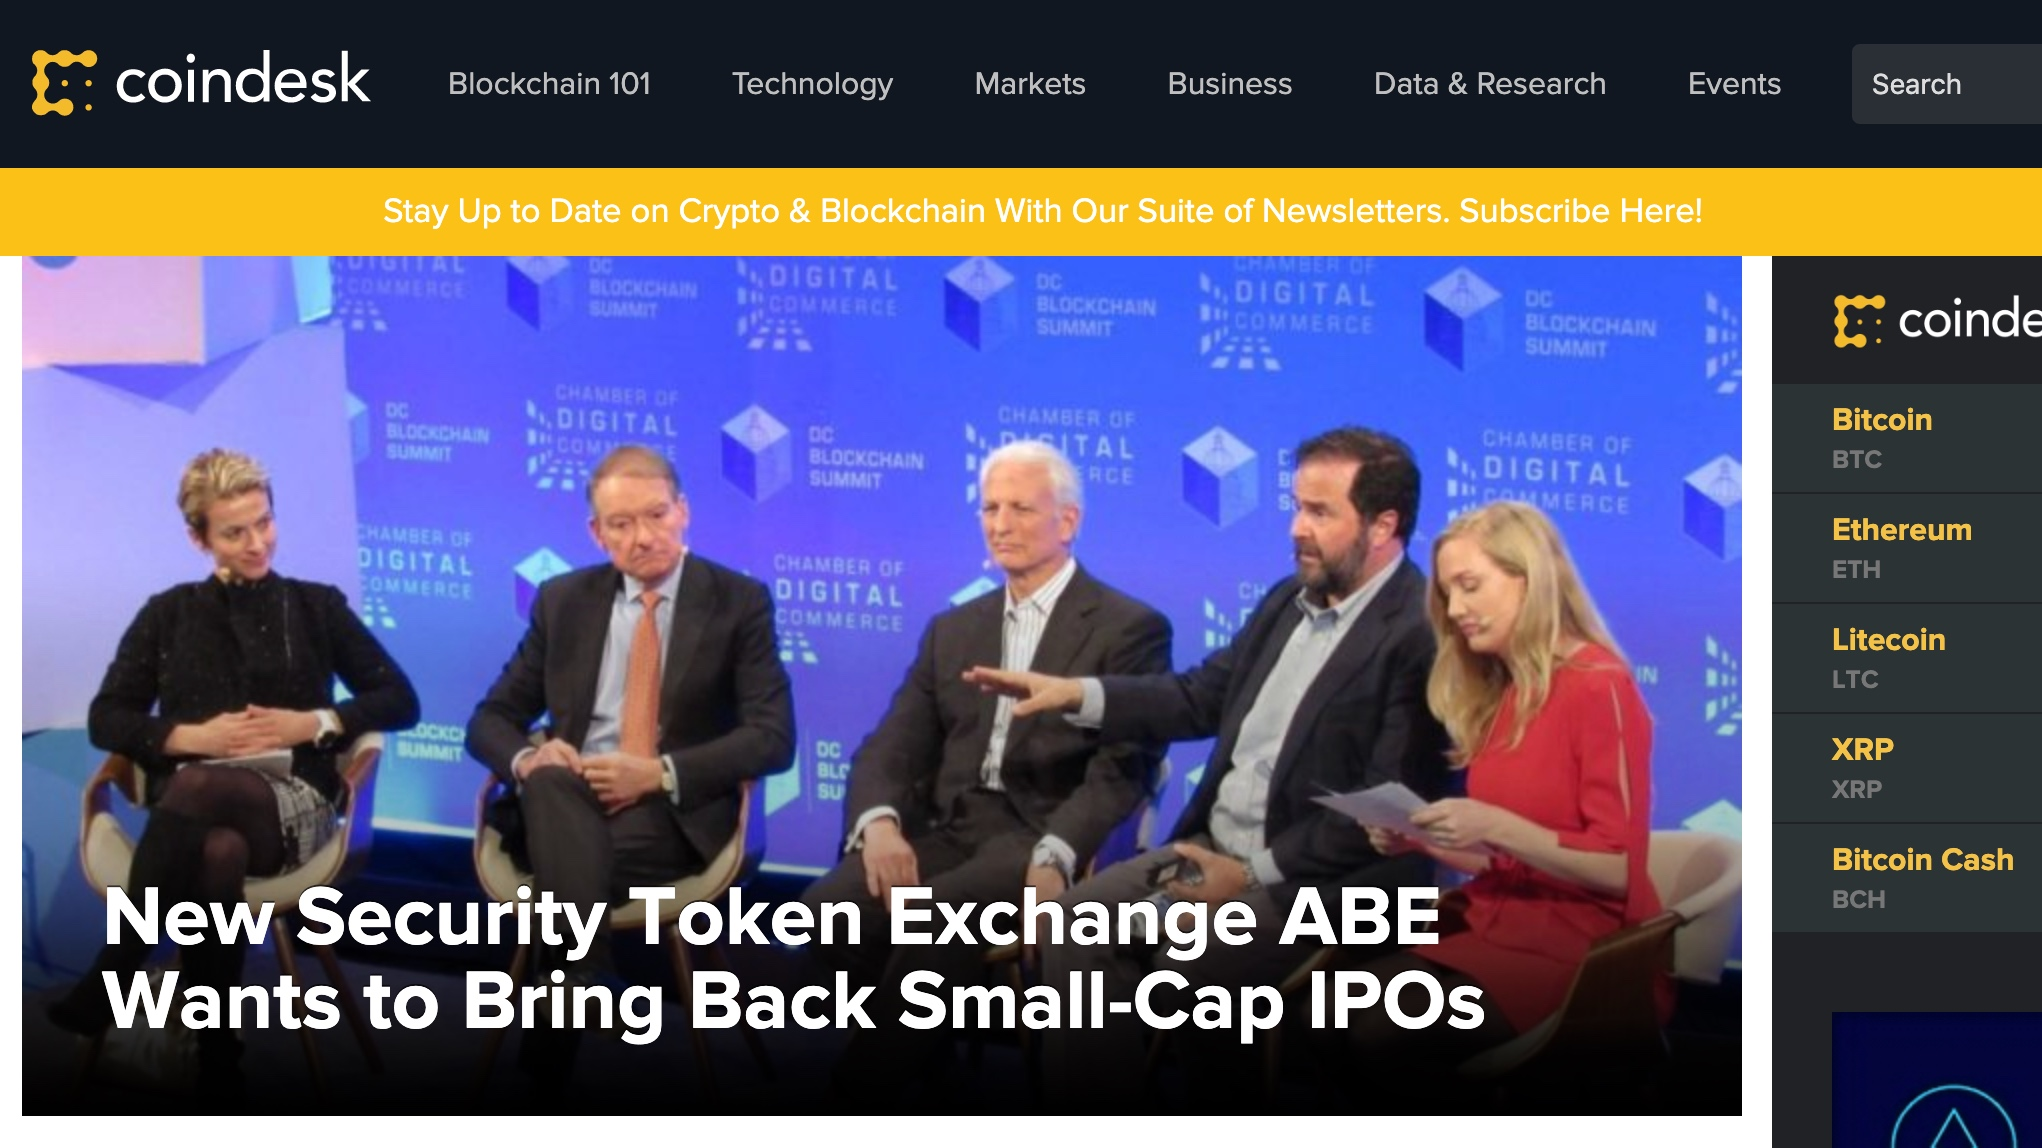 COINDESK - New Security Token Exchange ABE Wants to Bring Back Small-Cap IPOs